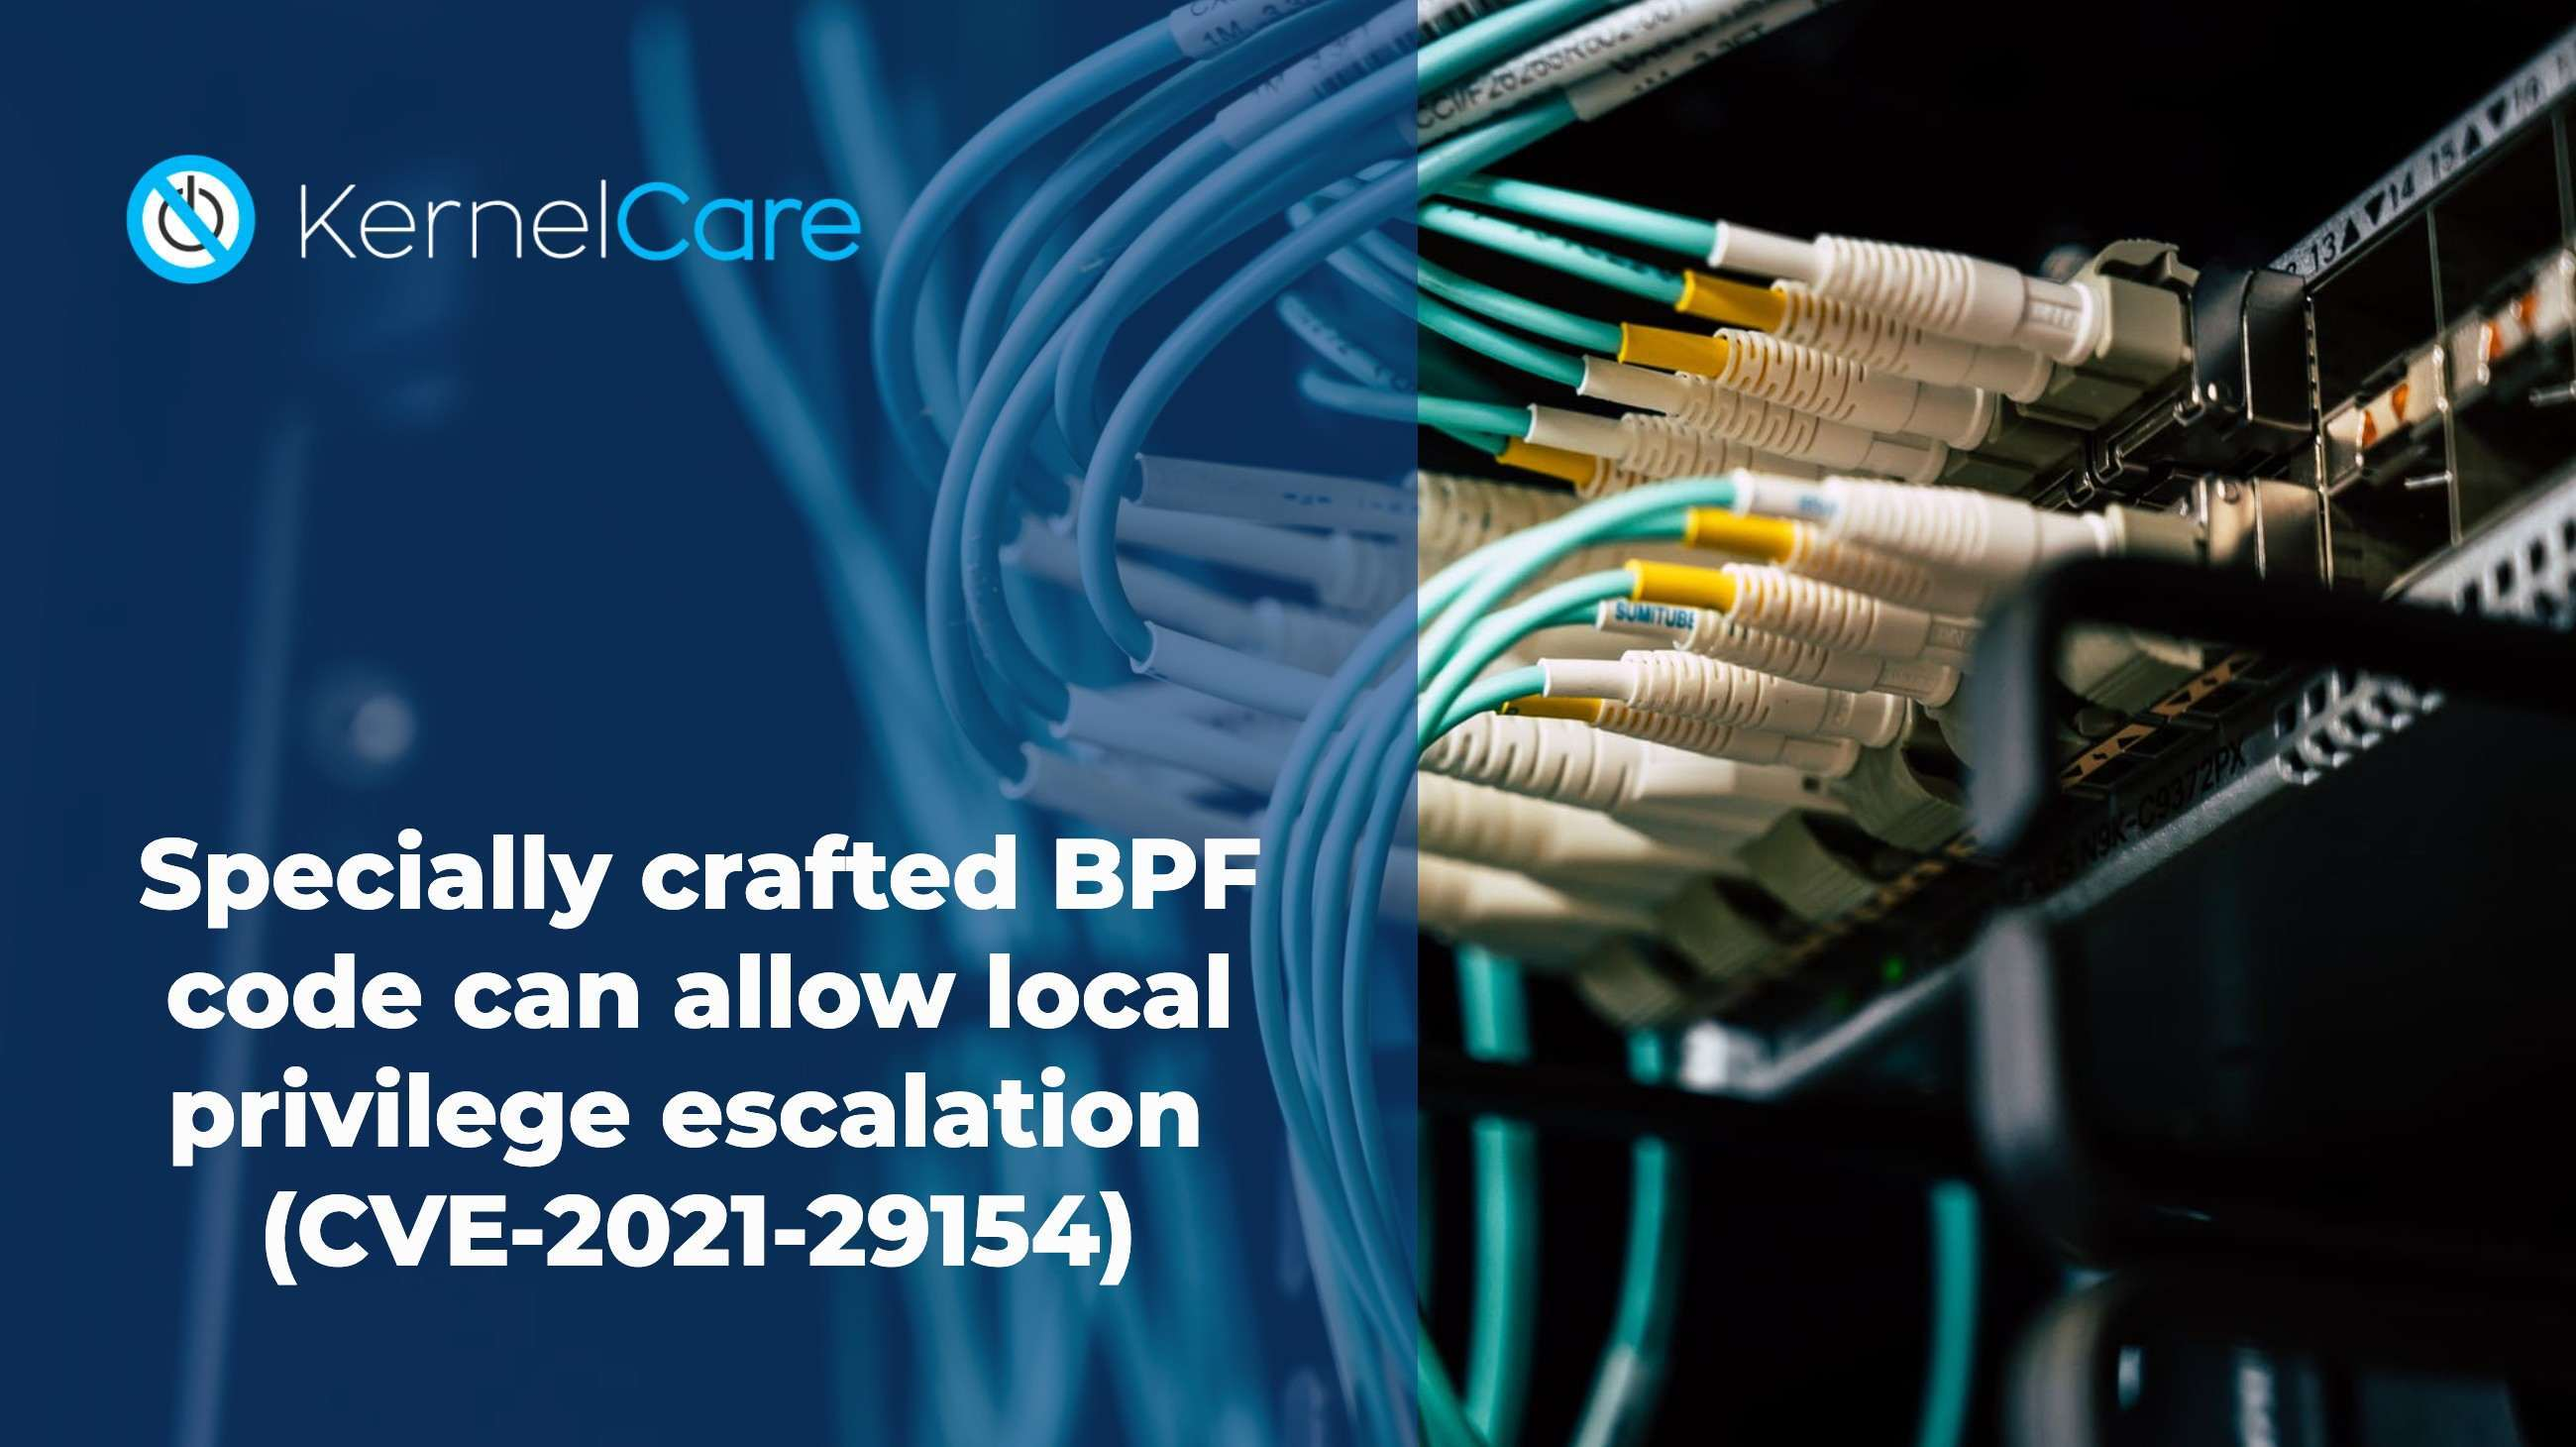 "Another vulnerability targeting the BPF subsystem has been disclosed publicly in the past few days (CVE-2021-29154). It allows users on a system running non-default configuration of the BPF subsystem to run specially crafted code as a BPF filter and run arbitrary executable code in the kernel context.   According to vendors, it affects all distributions running kernels up to version 5.11.12. Distribution vendors are starting to deliver patches through their update mechanisms, and KernelCare is also finalizing patches for it's rebootless patching process to address this issue.  Because of the nature of the BPF functionality, which is to allow user code to interact with network packet processing within the kernel, there is a very big potential for attack given any weakness in the implementation. This specific functionality has been addressed recently in the specter mitigation code bug discussed here.  To be vulnerable, a system would have to be configured to allow BPF JIT compilation (for example, by setting ""net.core.bpf_jit_enable = 1""). This is often the case in situations where regular users are doing work related to sockets' manipulation or in seccomp (secure computing mode) environments where permissions are granted more granularly than normal.  The actual vulnerable code resides in arch/x86/net/bpf_jit_comp.c and arch/x86/net/bpf_jit_comp32.c in the kernel source code tree. The flaw comes from the way branch displacement happens when the user code is compiled, by making wrong assumptions regarding the address of code during optimization.  Proper exploitation of this vulnerability could even lead to container or chroots' escape, since the kernel is shared between them, and running code in the kernel context permits it to escape containerization limits.  As a stop-gap procedure, you can quickly disable BPF JIT by running:  # echo 0 > /proc/sys/net/core/bpf_jit_enable   Which will persist until reversed or a system reboot. A more permanent removal can be achieved by using your distribution's syscfg equivalent utility to set ""net.core.bpf_jit_enable=0"" at boot time. Of course, this type of solution solves the problem by disabling the functionality, which in itself is self-defeating. If you actually had your system configured to use BPF JIT, in all likelihood your use case needed that setting explicitly enabled, and you should rely instead on proper kernel patching, either through your distribution vendor's patches or through KernelCare's rebootless process."